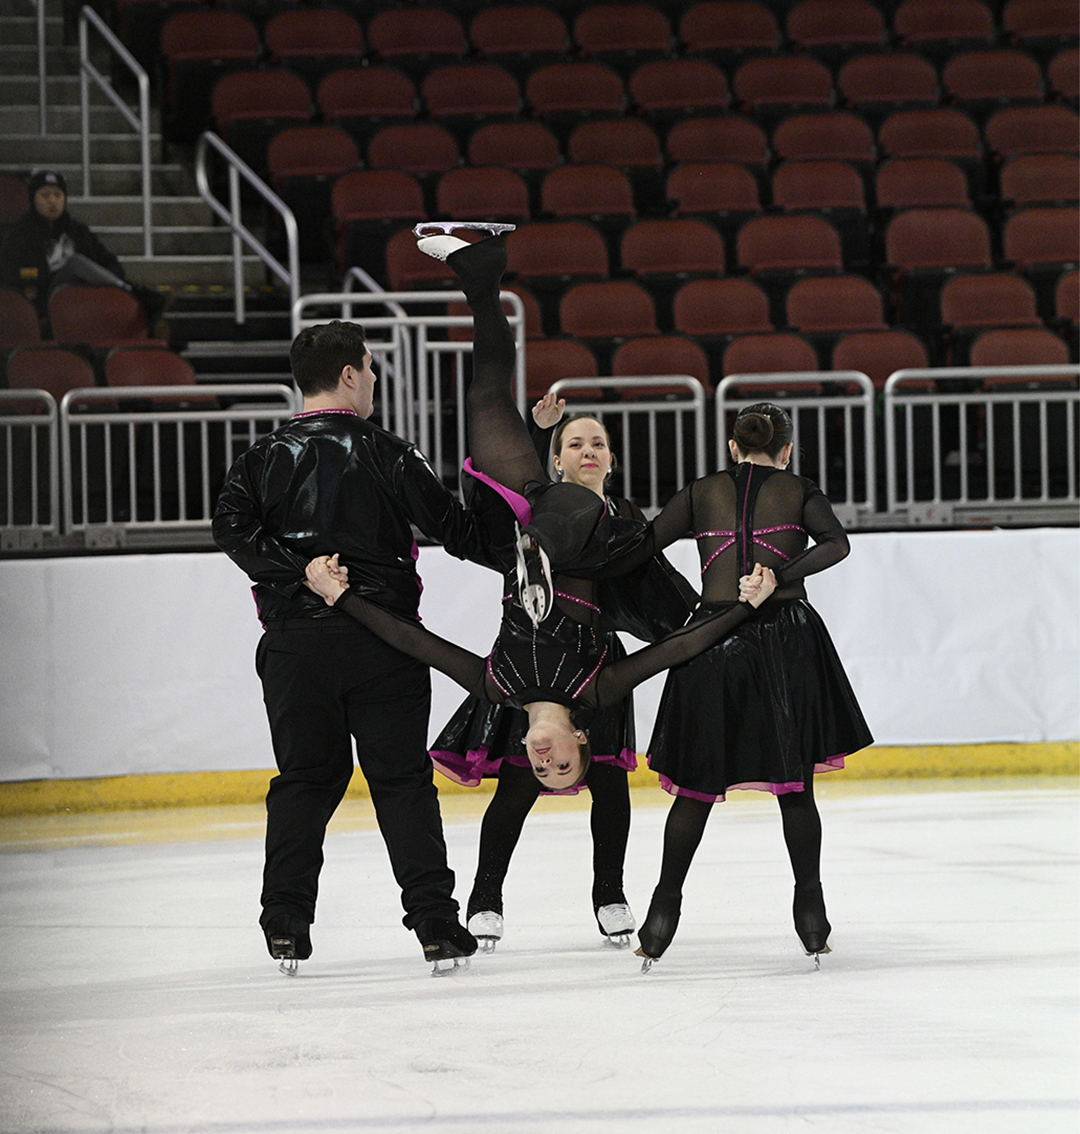 Trine University Collegiate Synchronized Skating Team